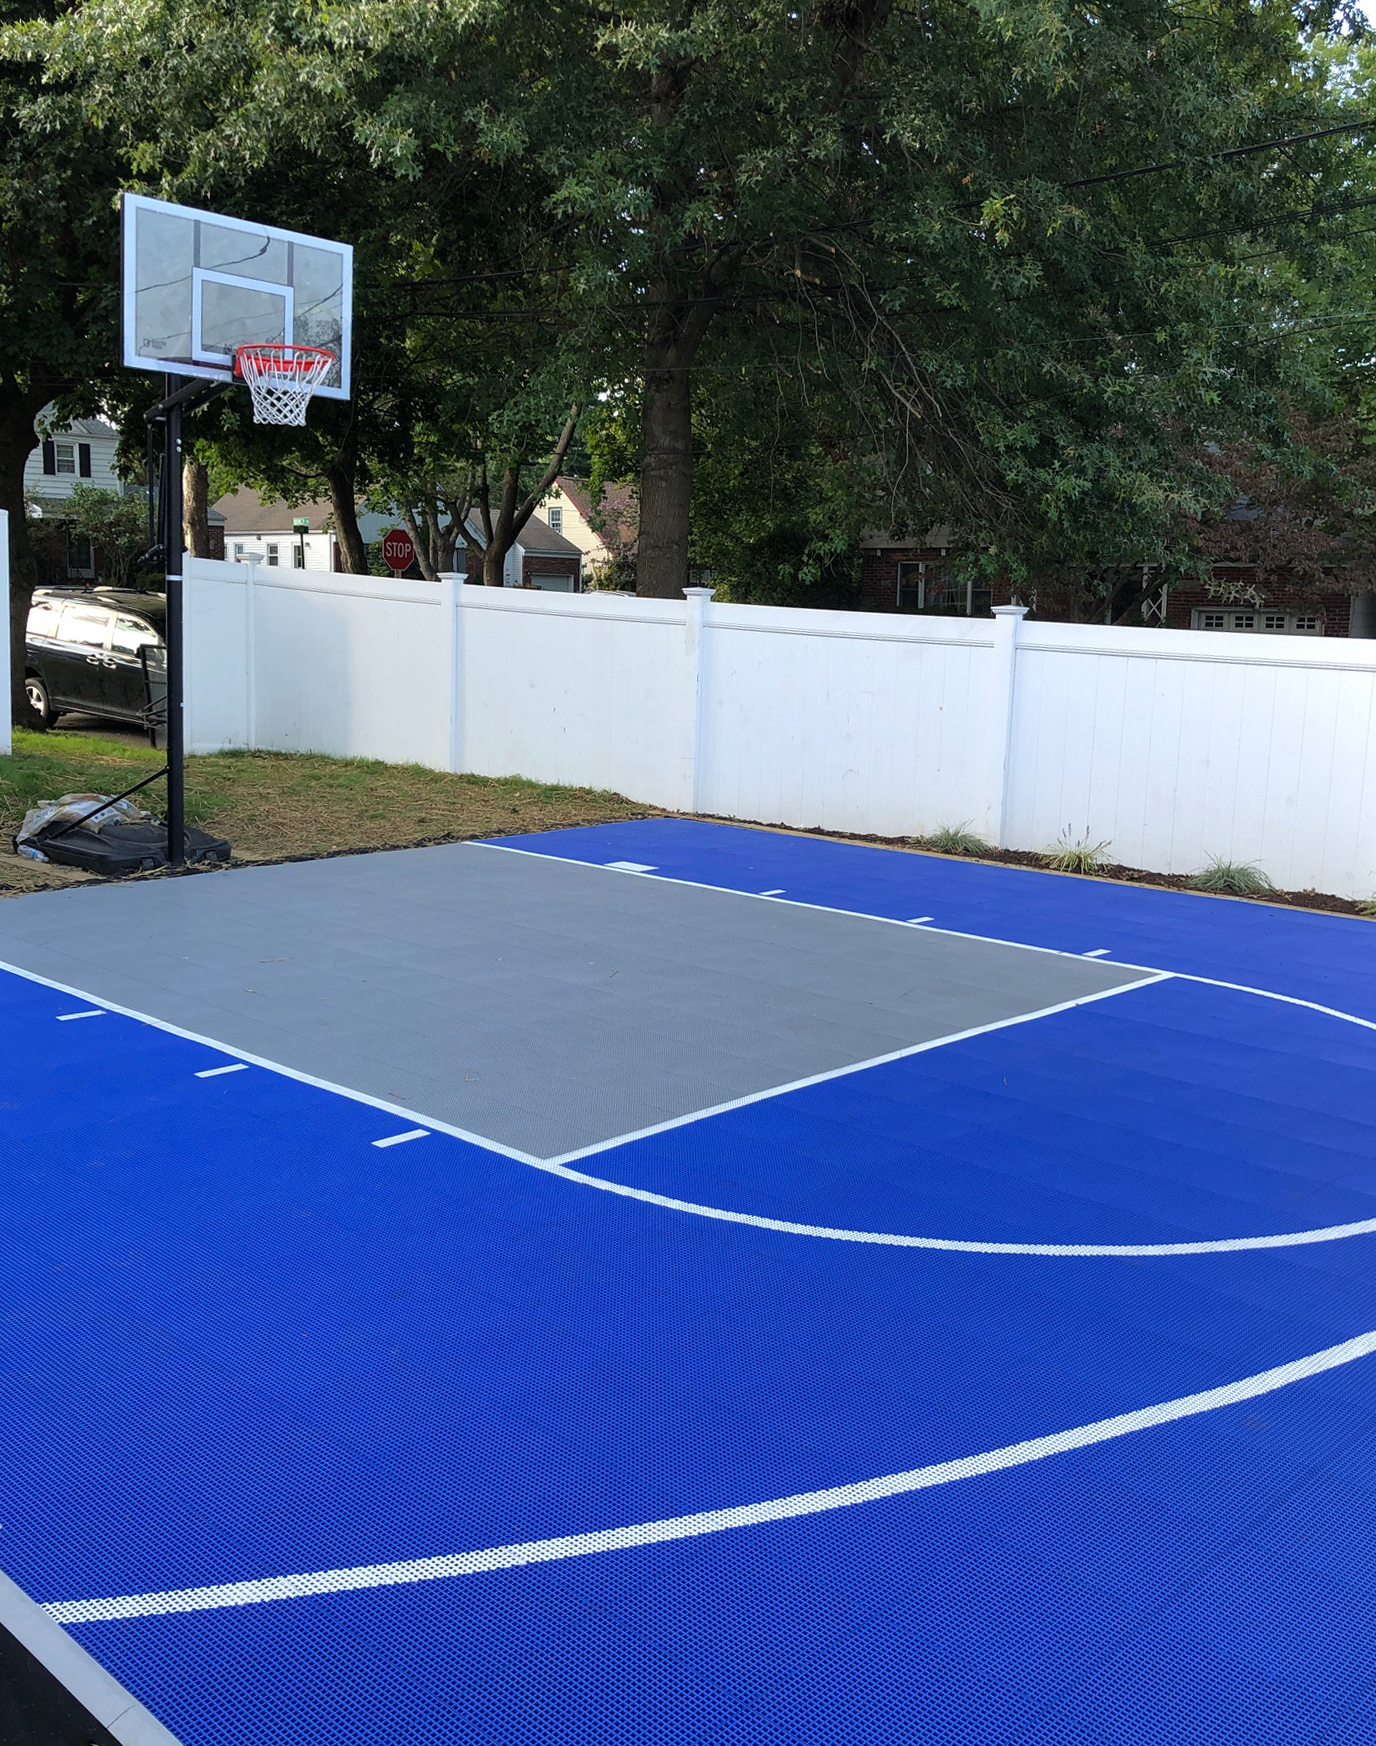 Bright blue and gray basketball half court